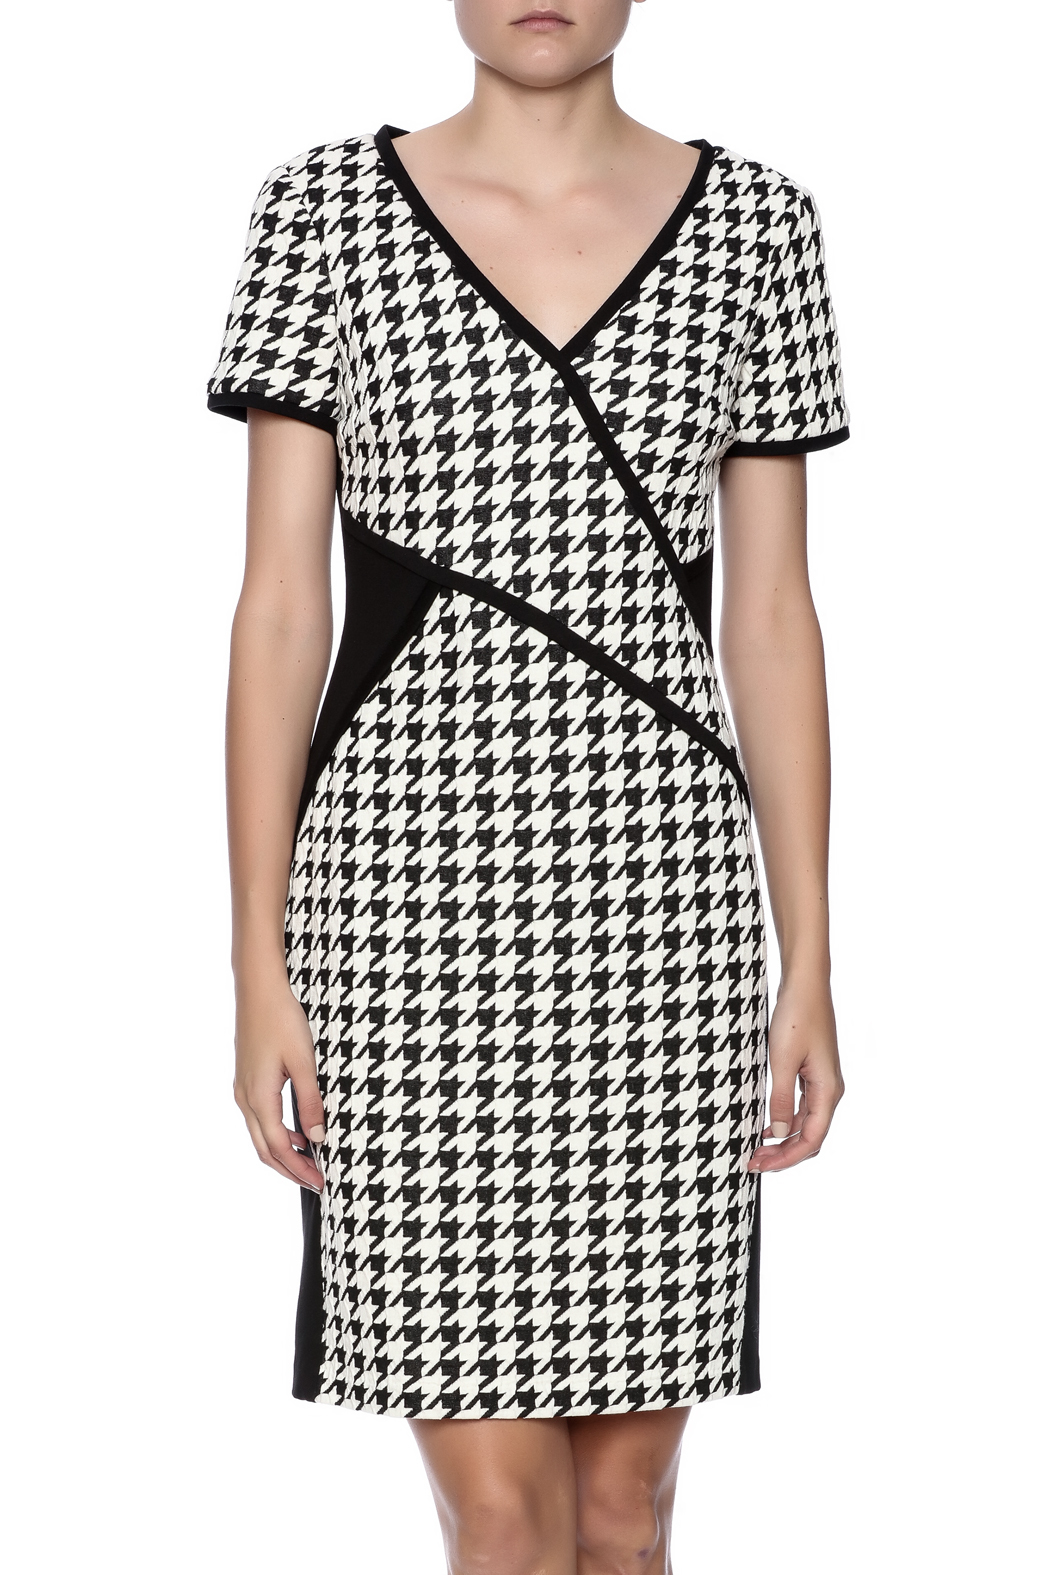 Cartise Houndstooth Dress from Maryland by Aspire Women's ...